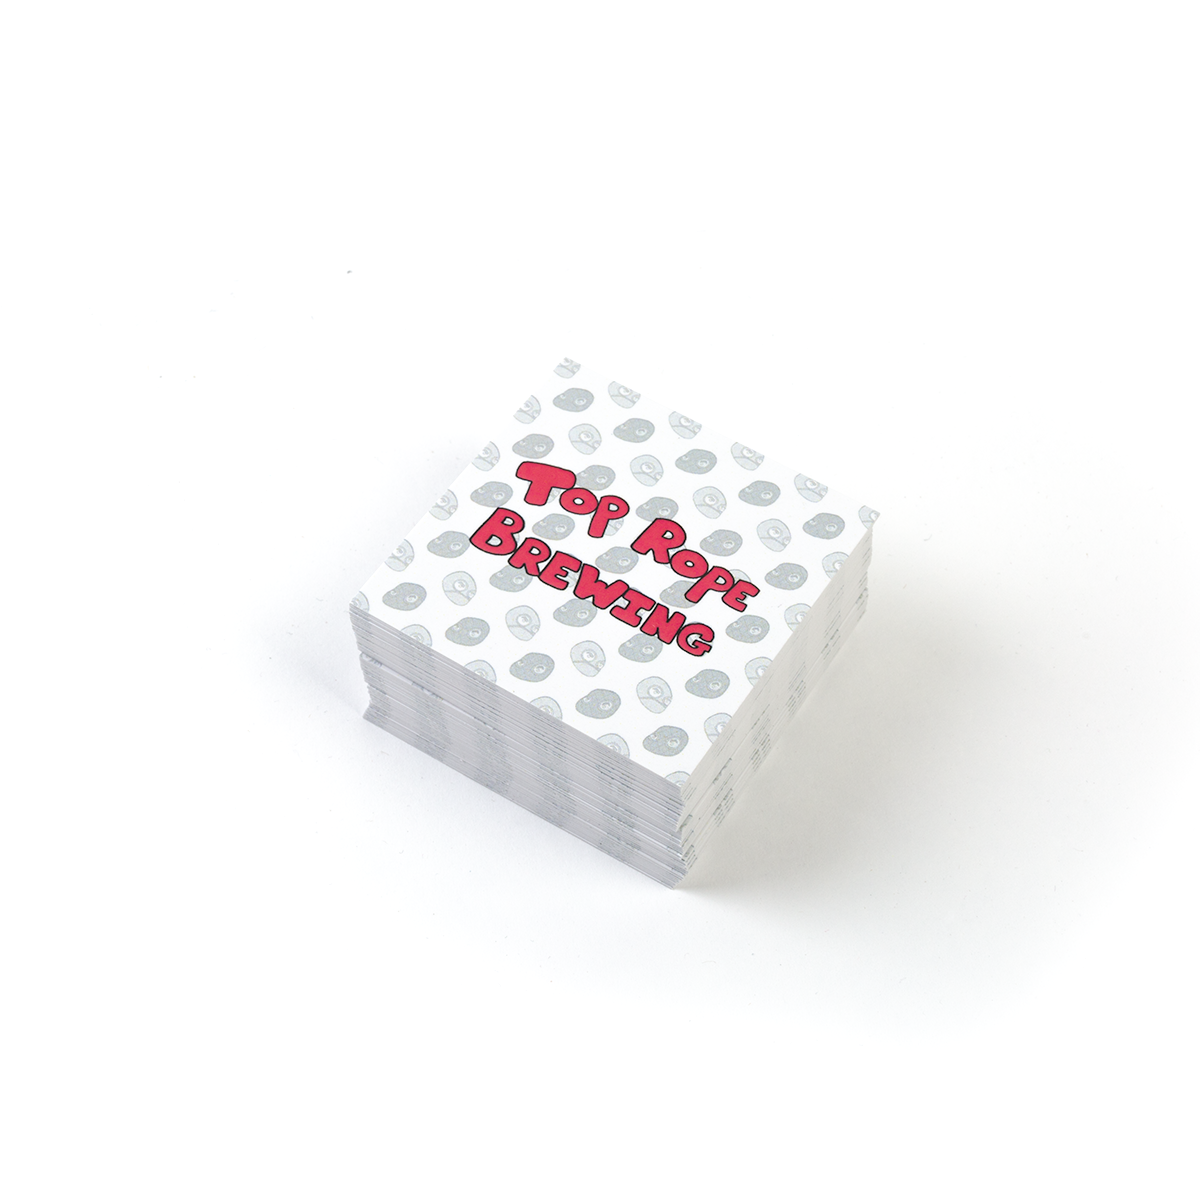 Do something different with our square business cards   Business ...